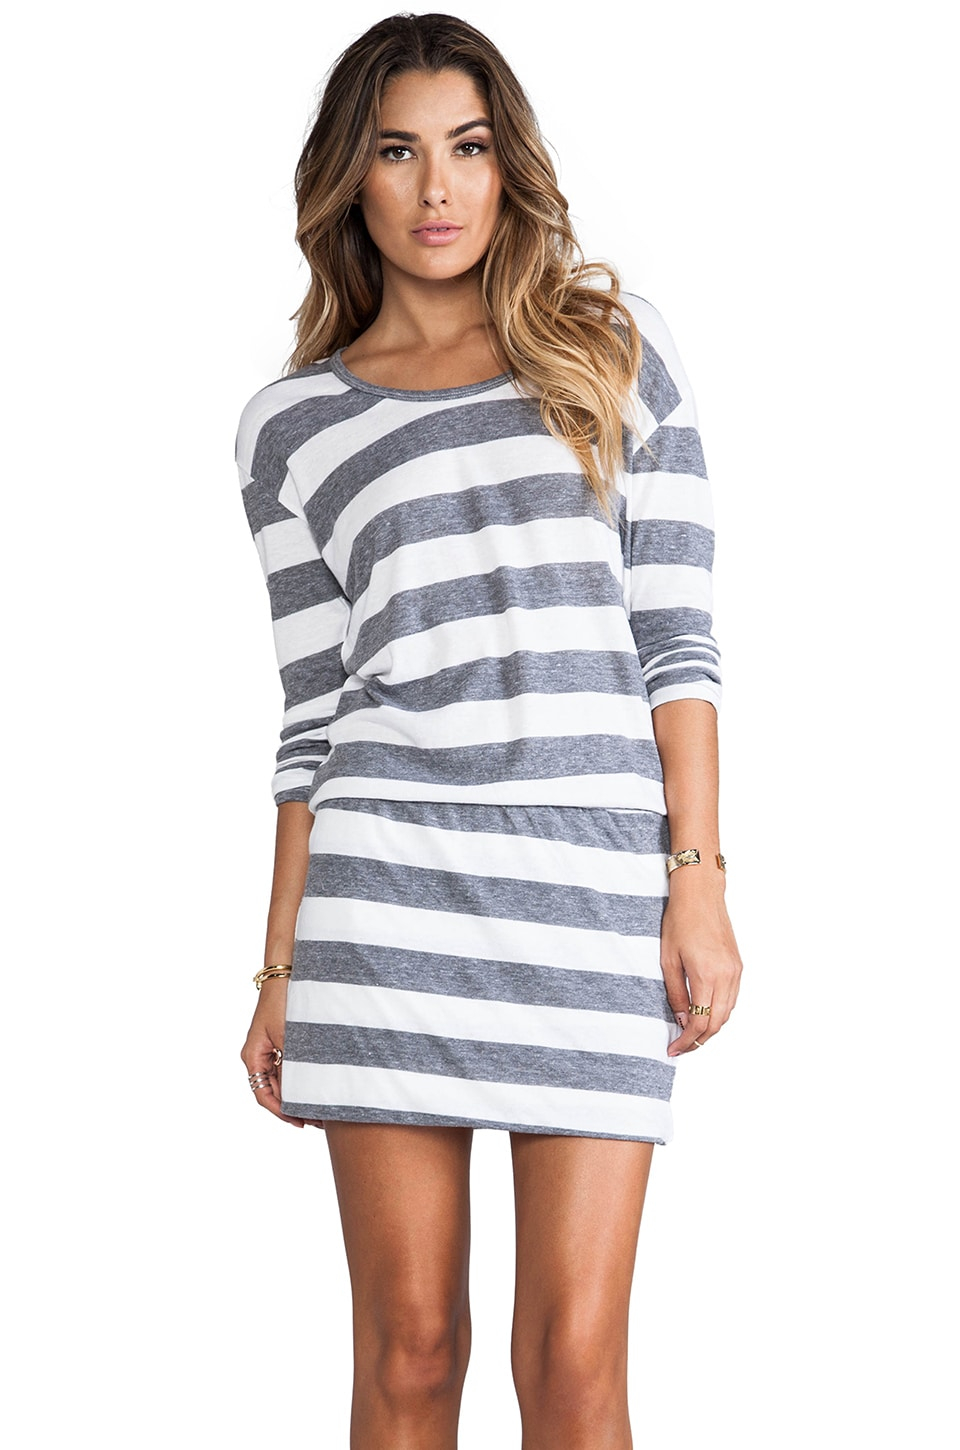 C&C California Long Sleeve Striped Blouson Dress in White